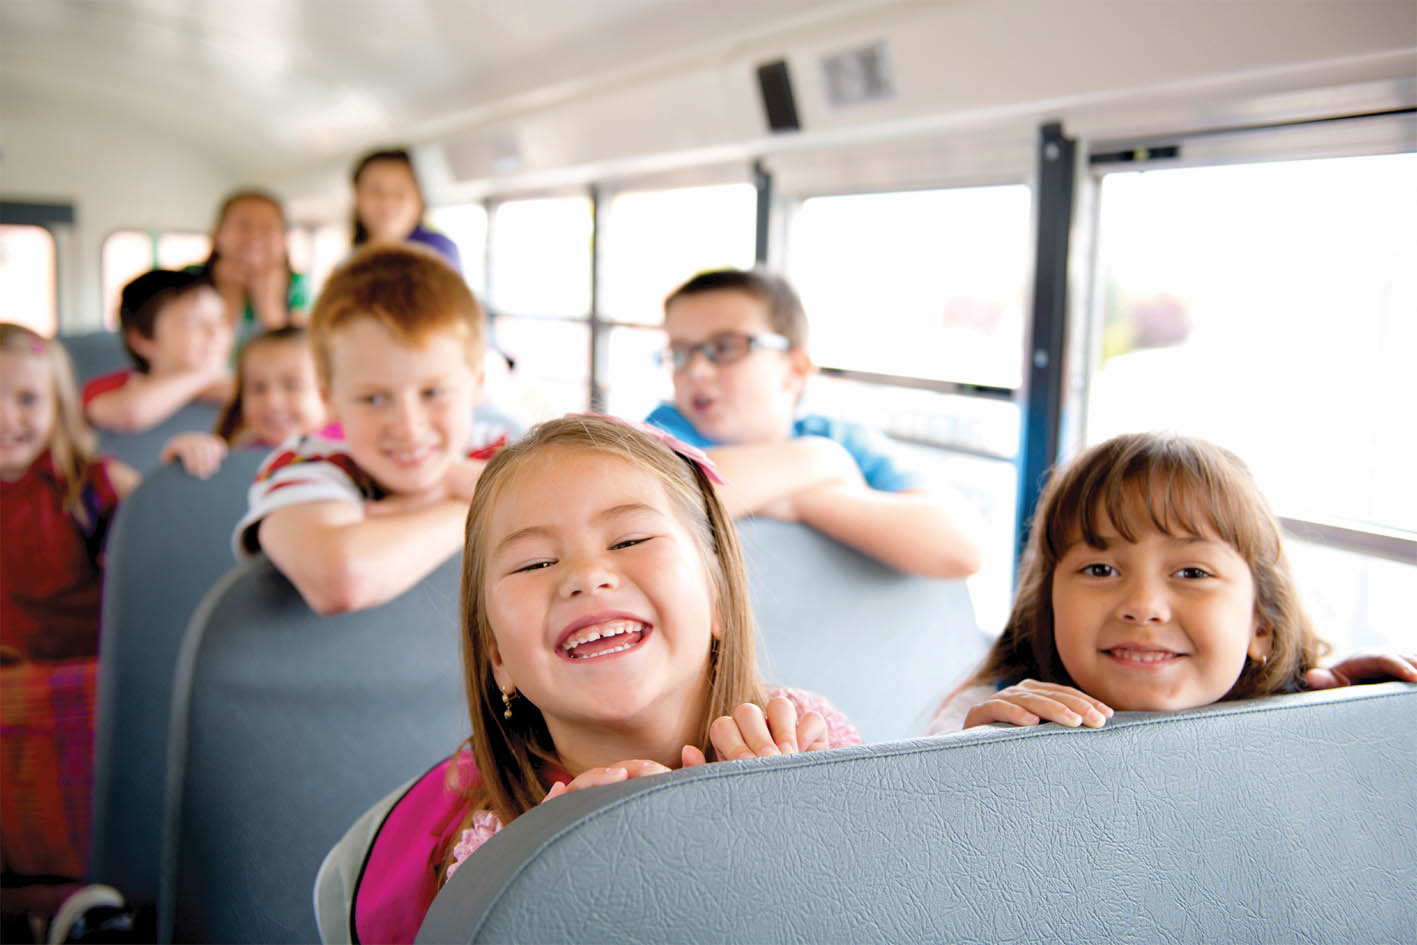 Ritchies safely transport 1000's of kiwi kids to school daily